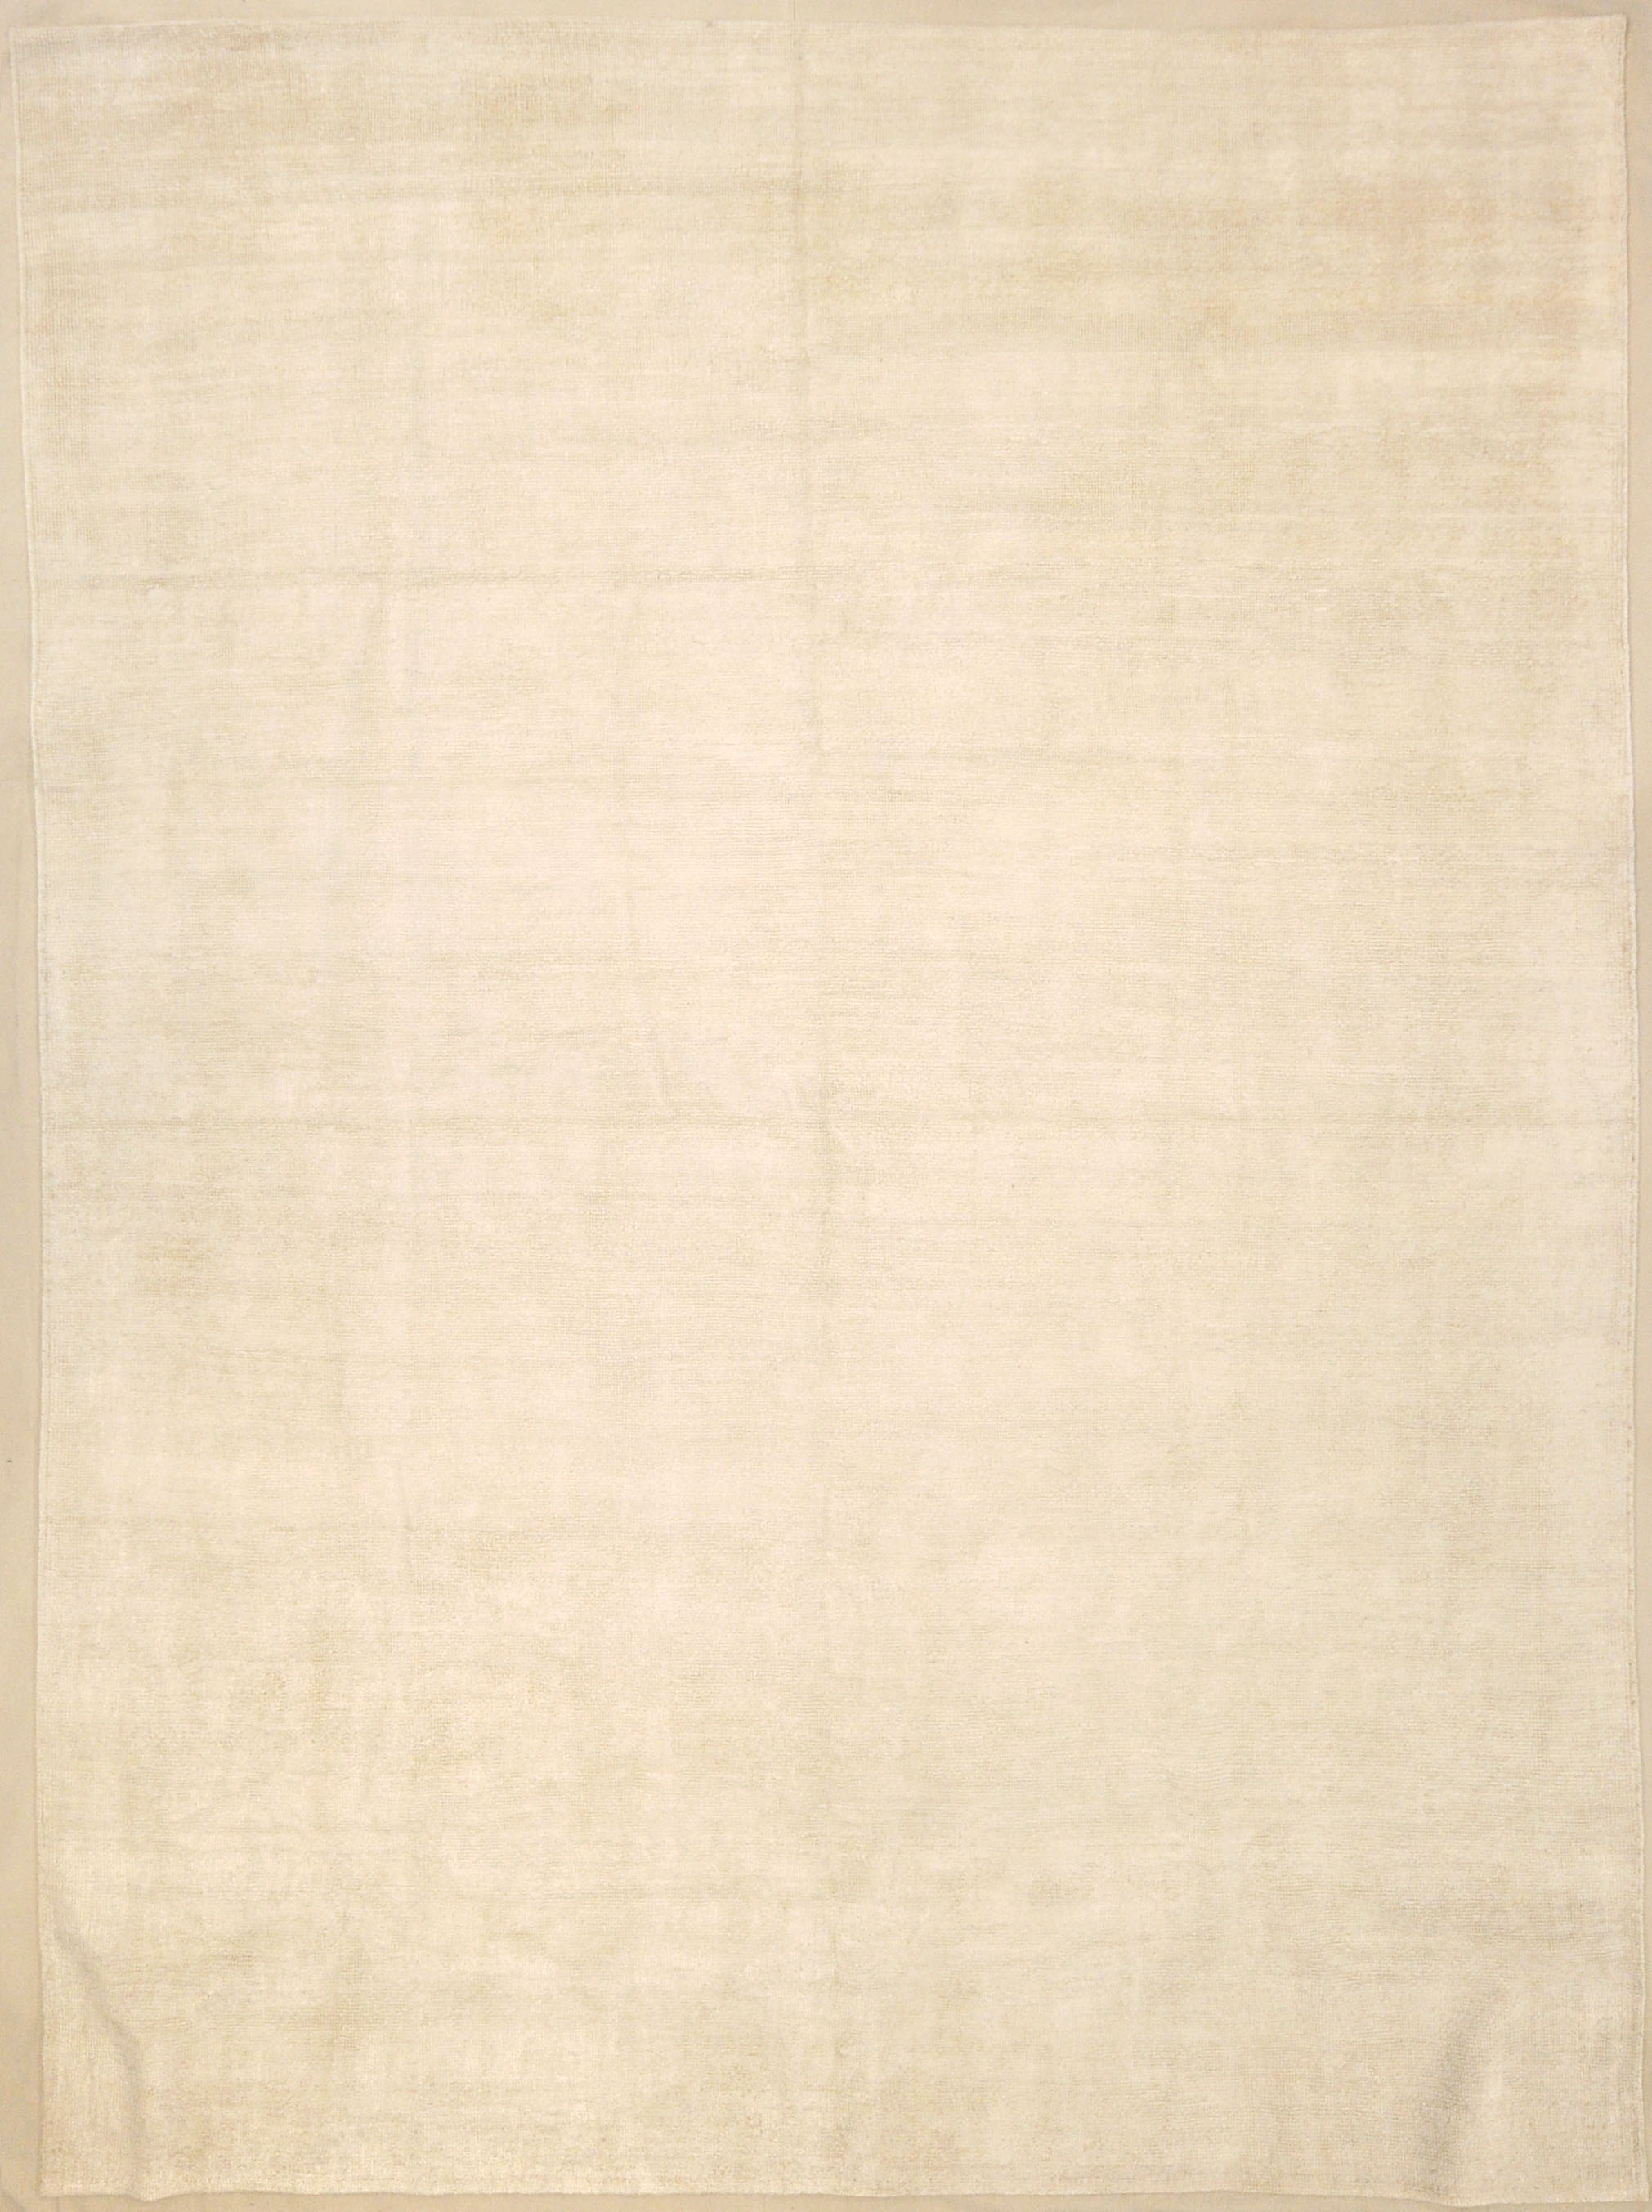 Montecito Oushak Rug 30305. A piece of genuine authentic woven art woven by Ziegler and Company and sold by Santa Barbara Design Center, Rugs and More.